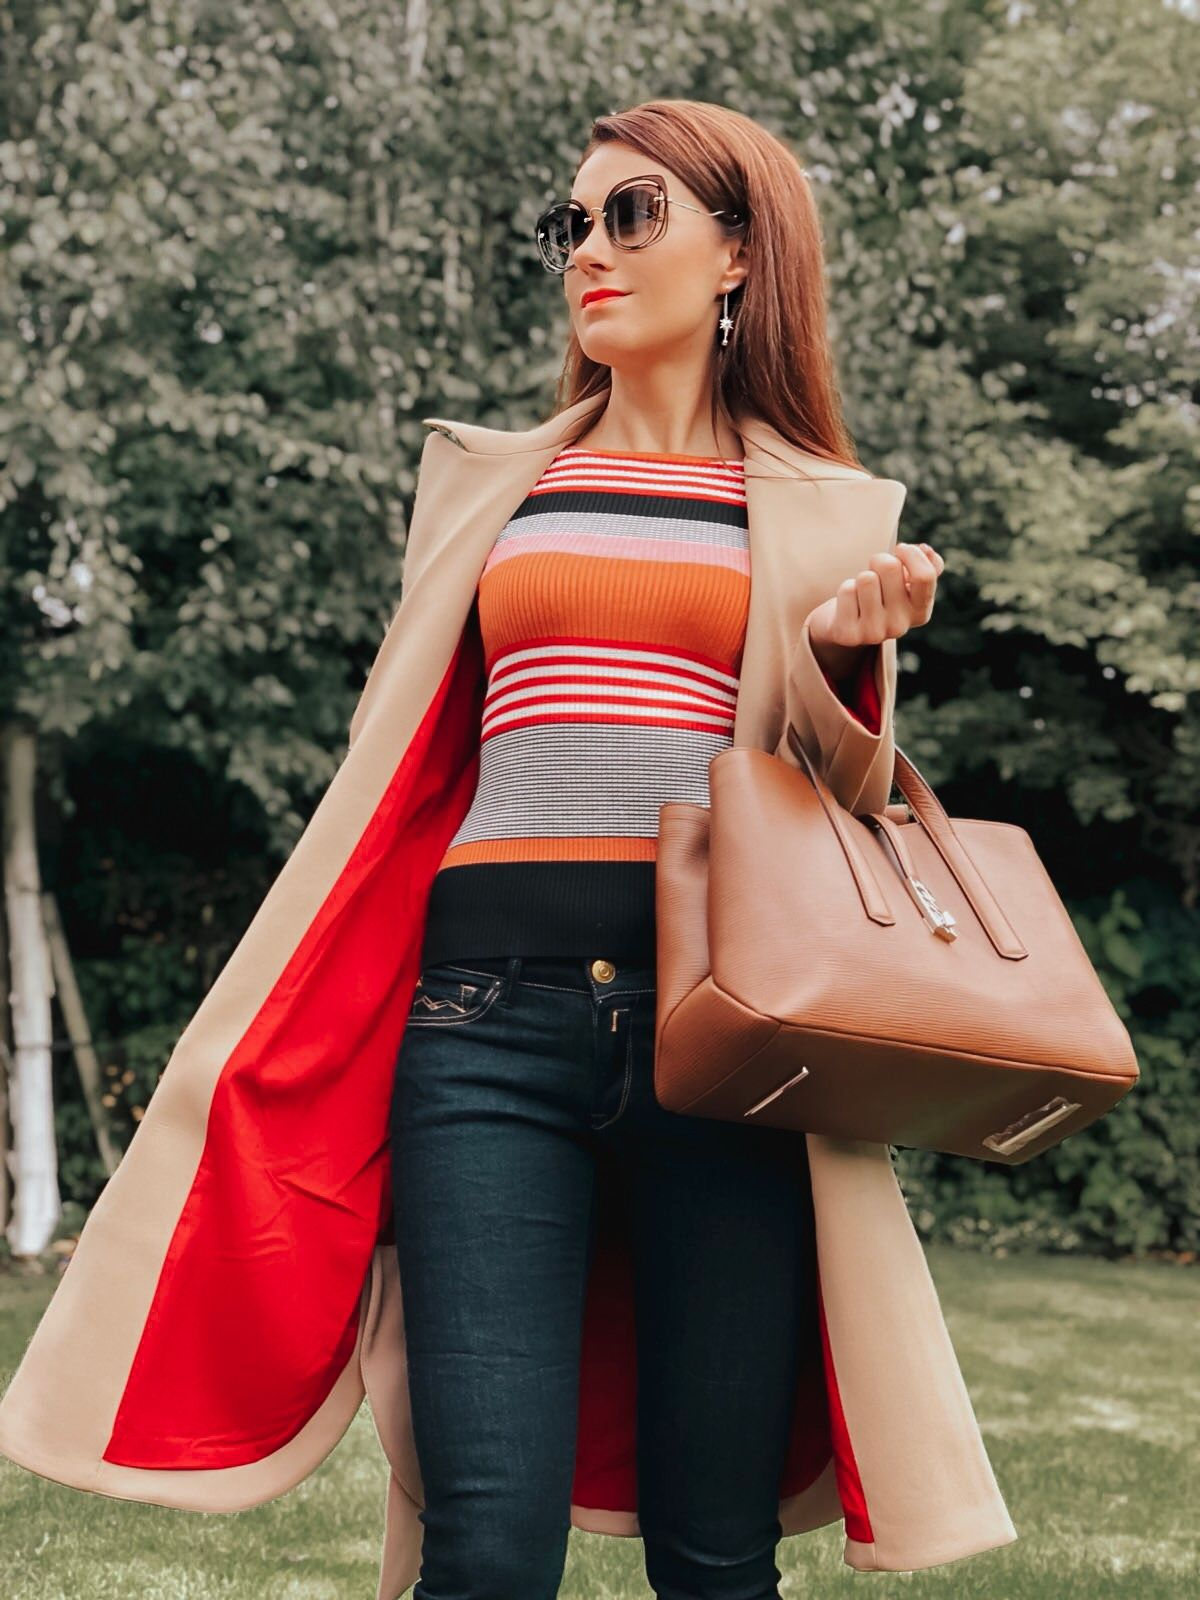 Hugo Boss Boss Veronika Leather Tan Tote Bag   Armani Exchange Trench Coat   River Island Stripe Lace Up Sleeve Bodycon Top   V by Very Finchley Knitted Peep Toe Shoeboot   Miu Miu sunglasses   Swarovski FANTASTIC CHAIN PIERCED EARRINGS, WHITE   Replay Luz Mid Rise Rinse Jean with Contrast Stitch